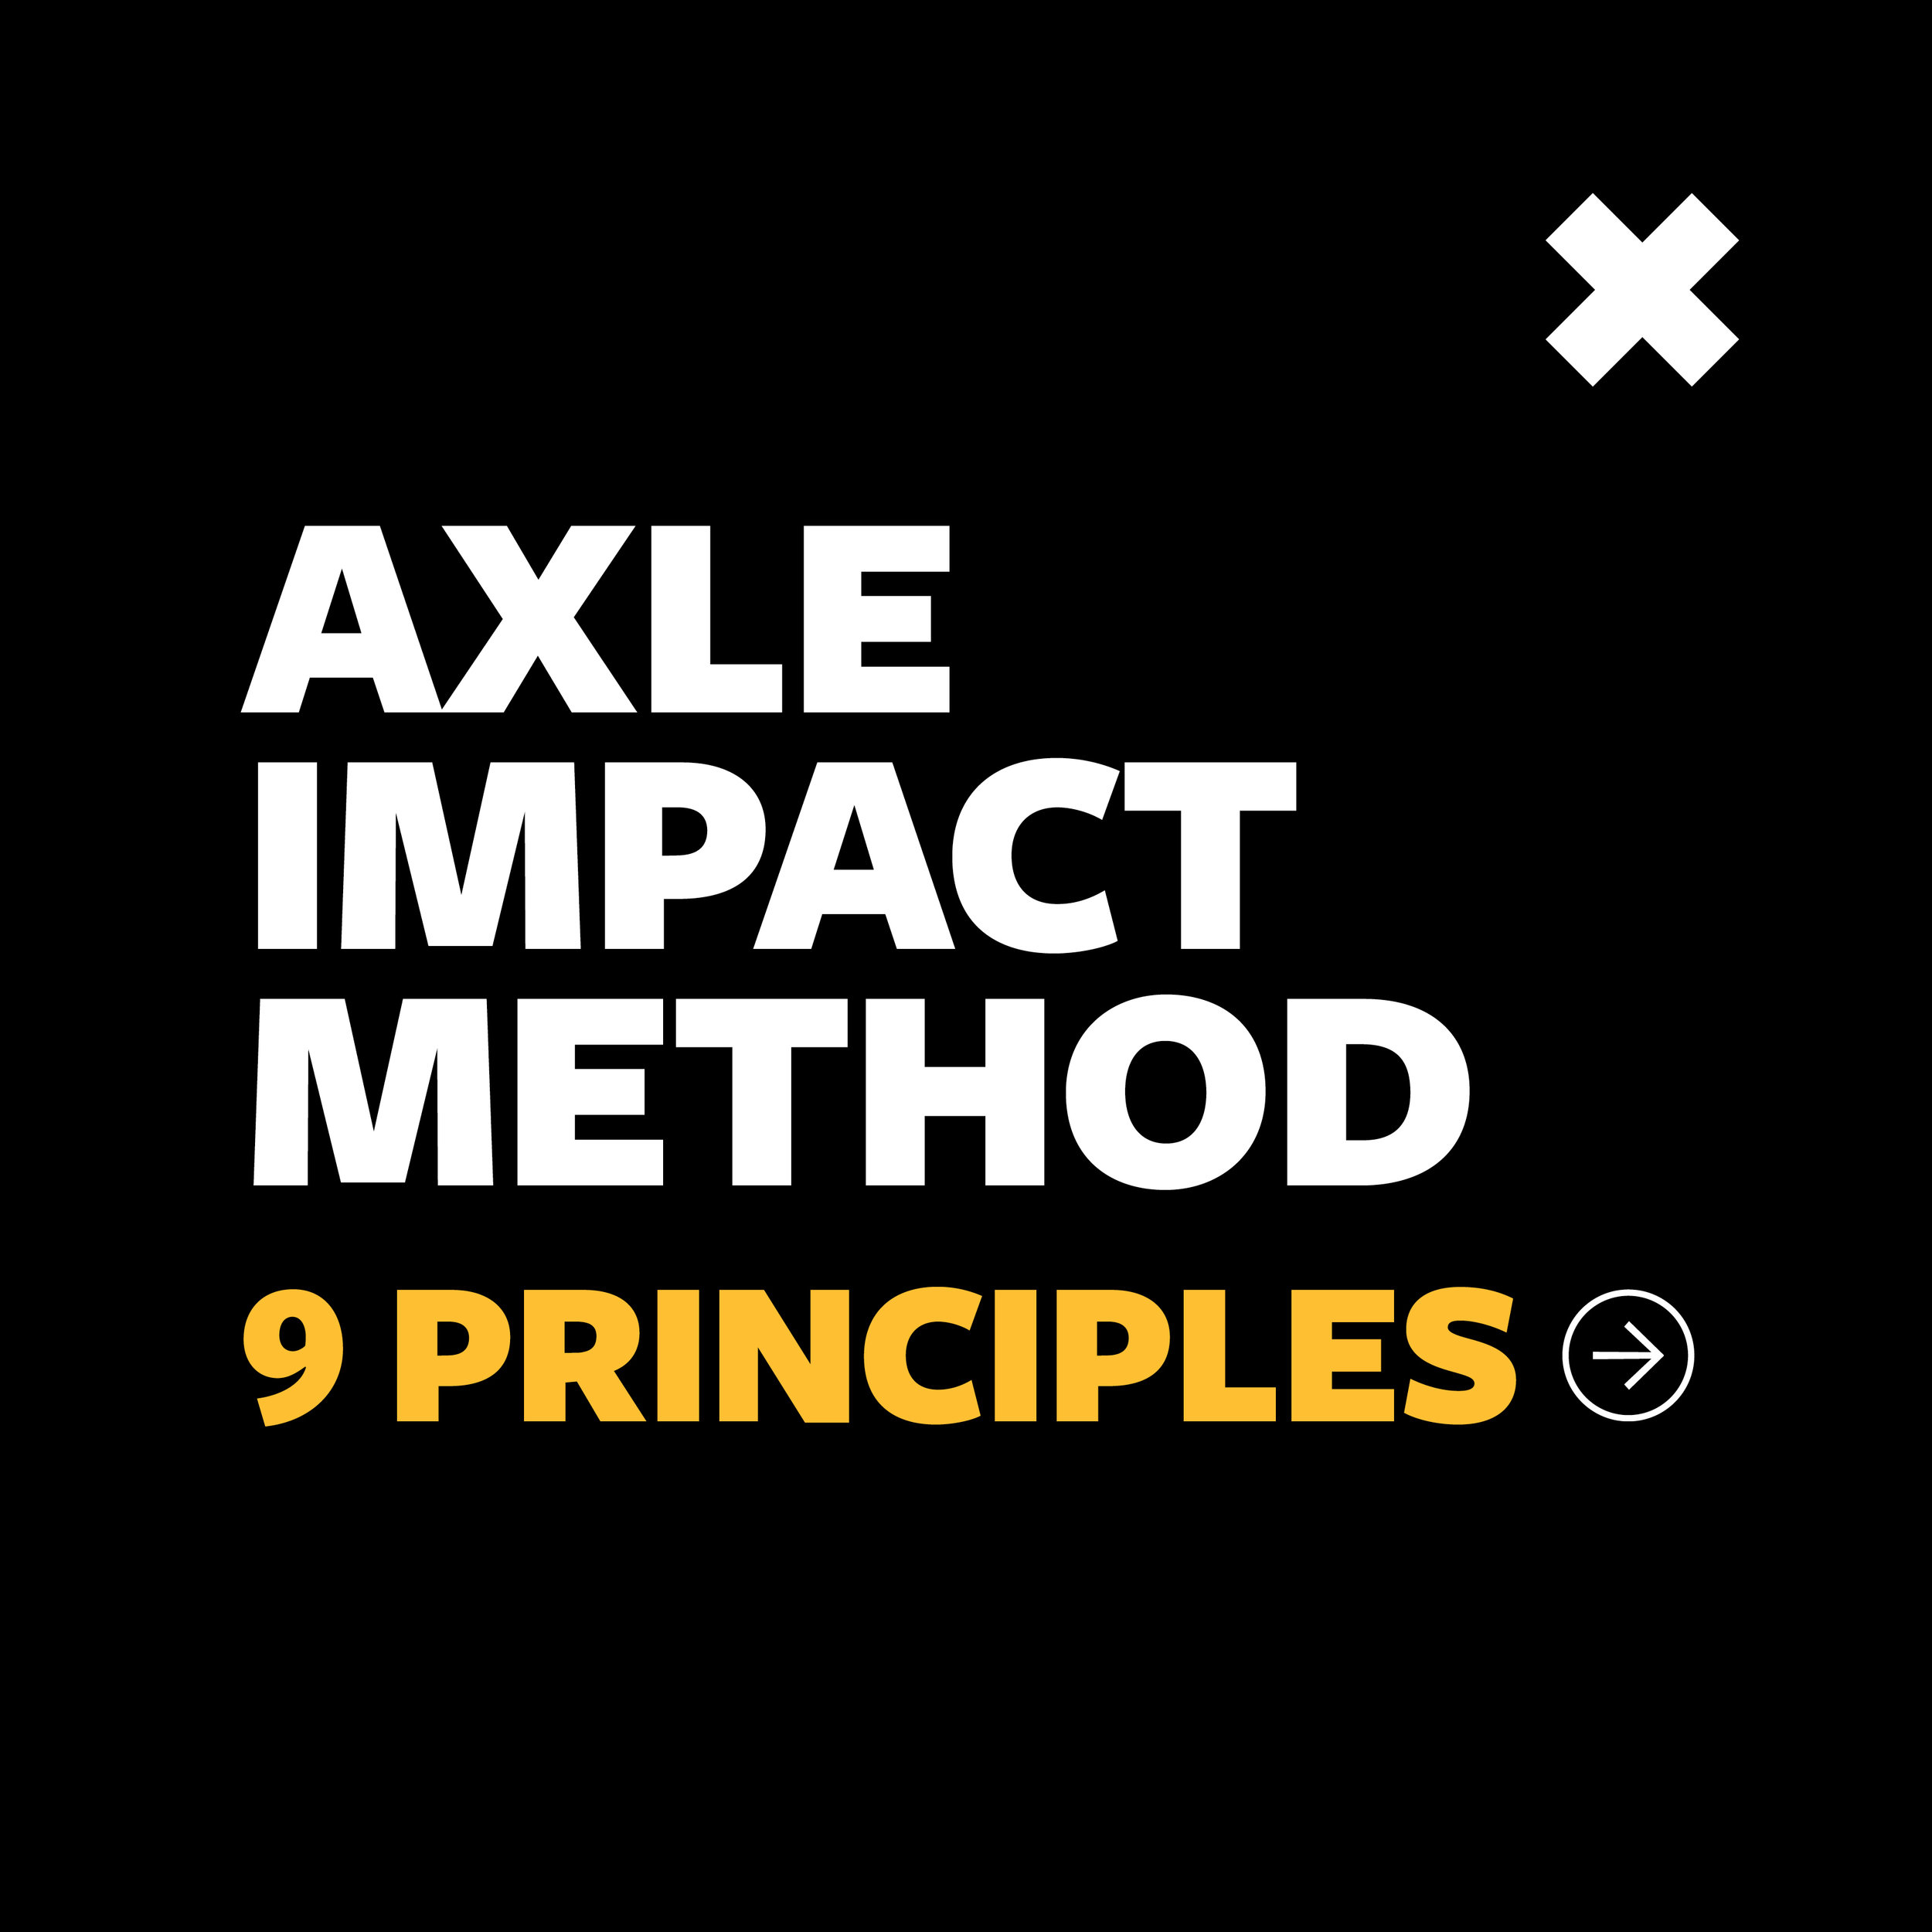 Axle Impact Method.jpg